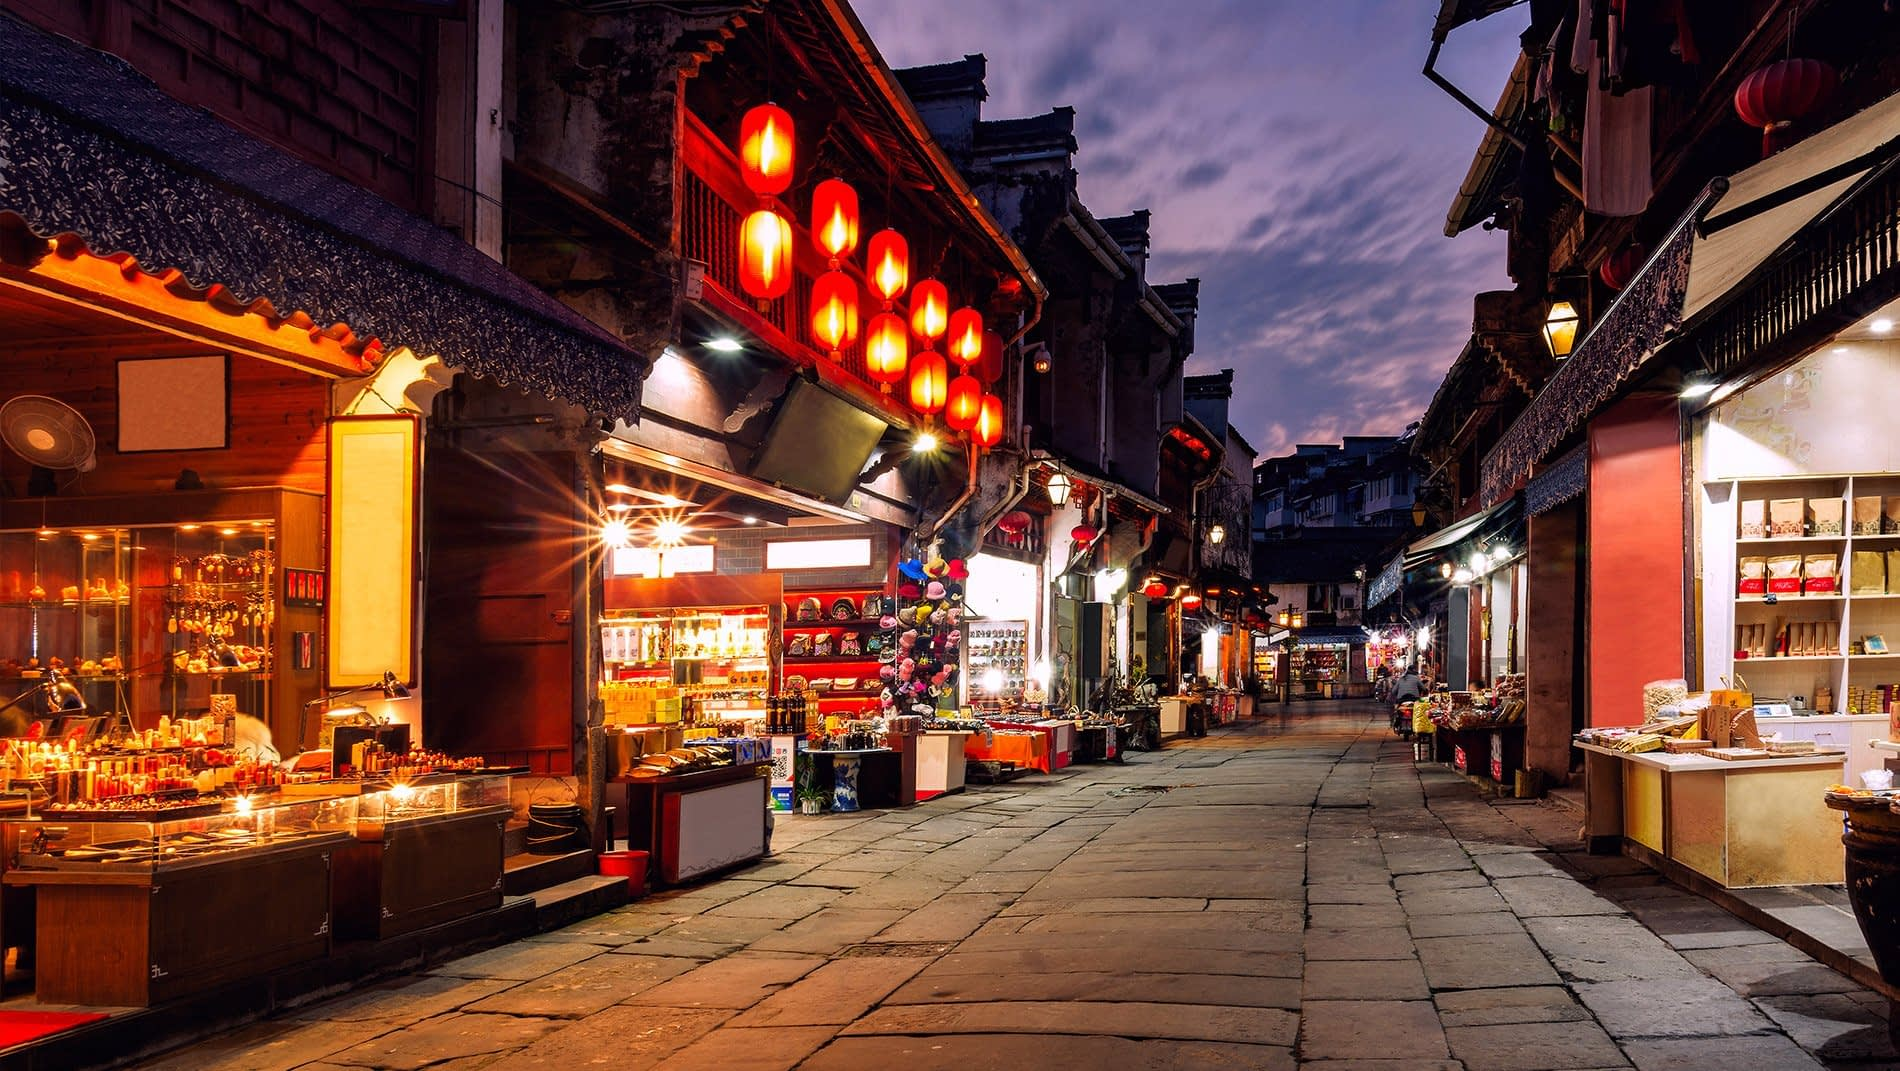 Huangshan Old Street~In the heart of the ancient downtown area, this street has been bustling with activity for over 400 years. From ink stones to calligraphy brushes, dried teas to ink sticks, it focuses on the treasures of the traditional scholar.